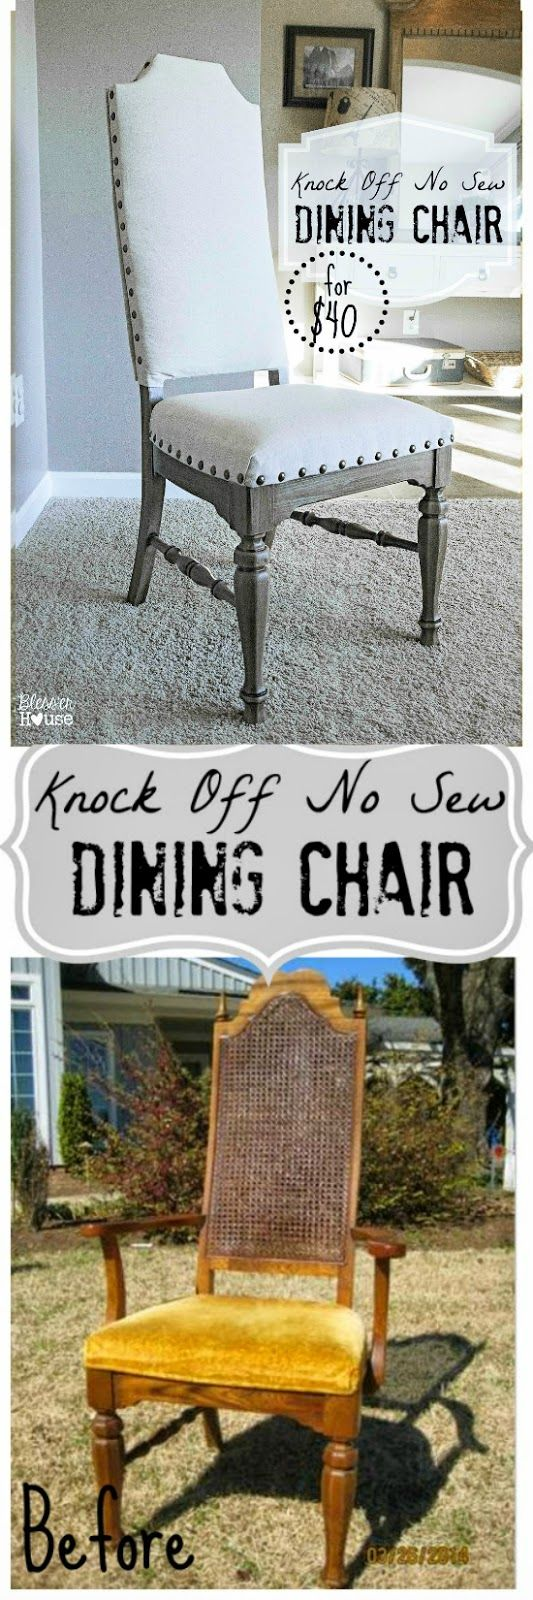 diy furniture makeover ideas. diy furniture makeover redo chair knock off no sew dining chairs diy ideas